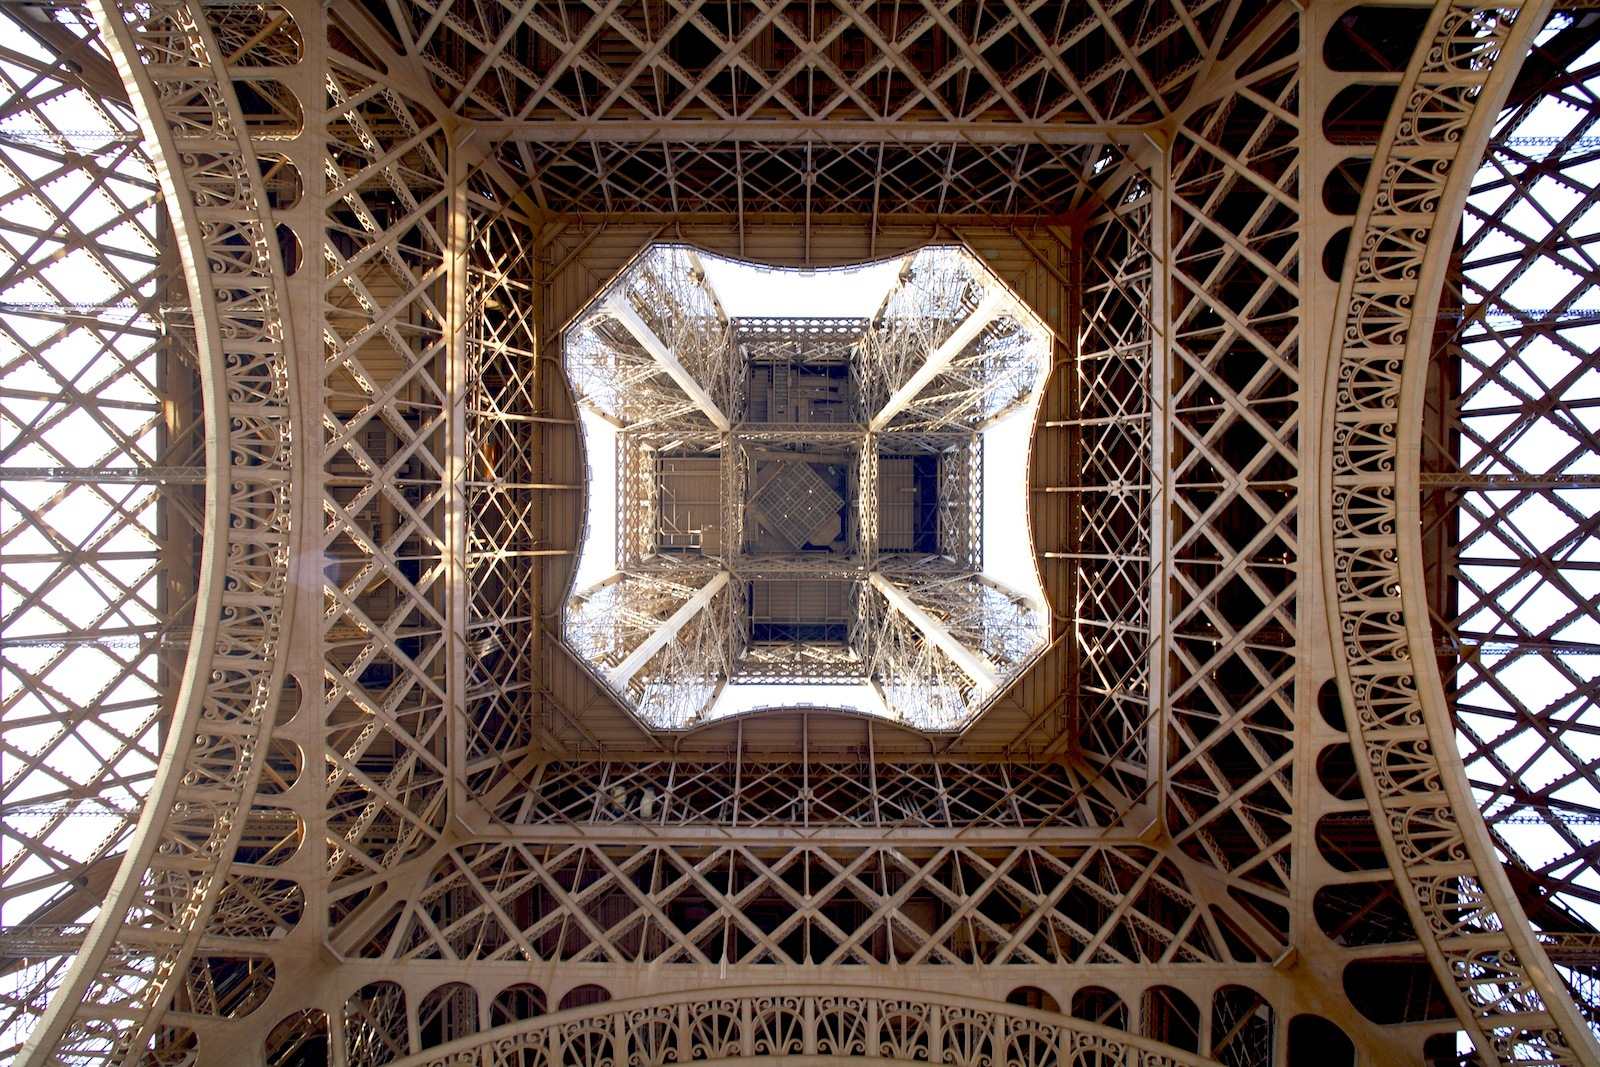 Ascension de la Tour Eiffel